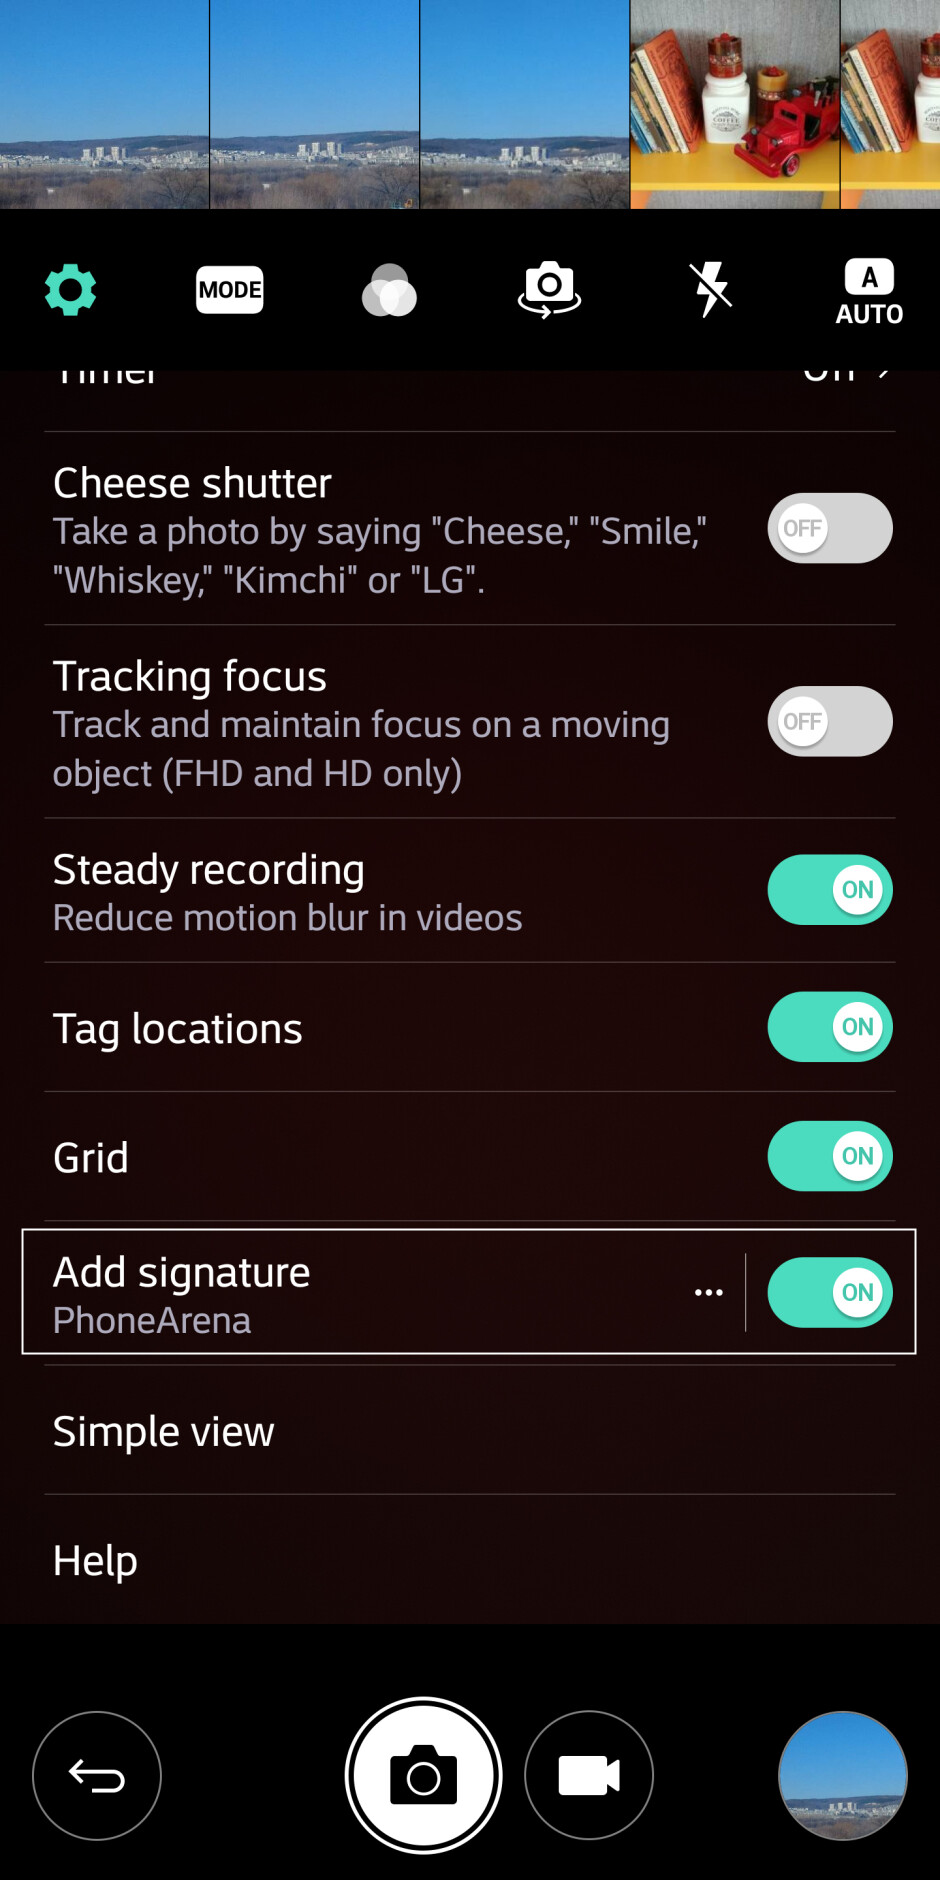 The new signature option in settings - LG G6 camera UI: what's changed?